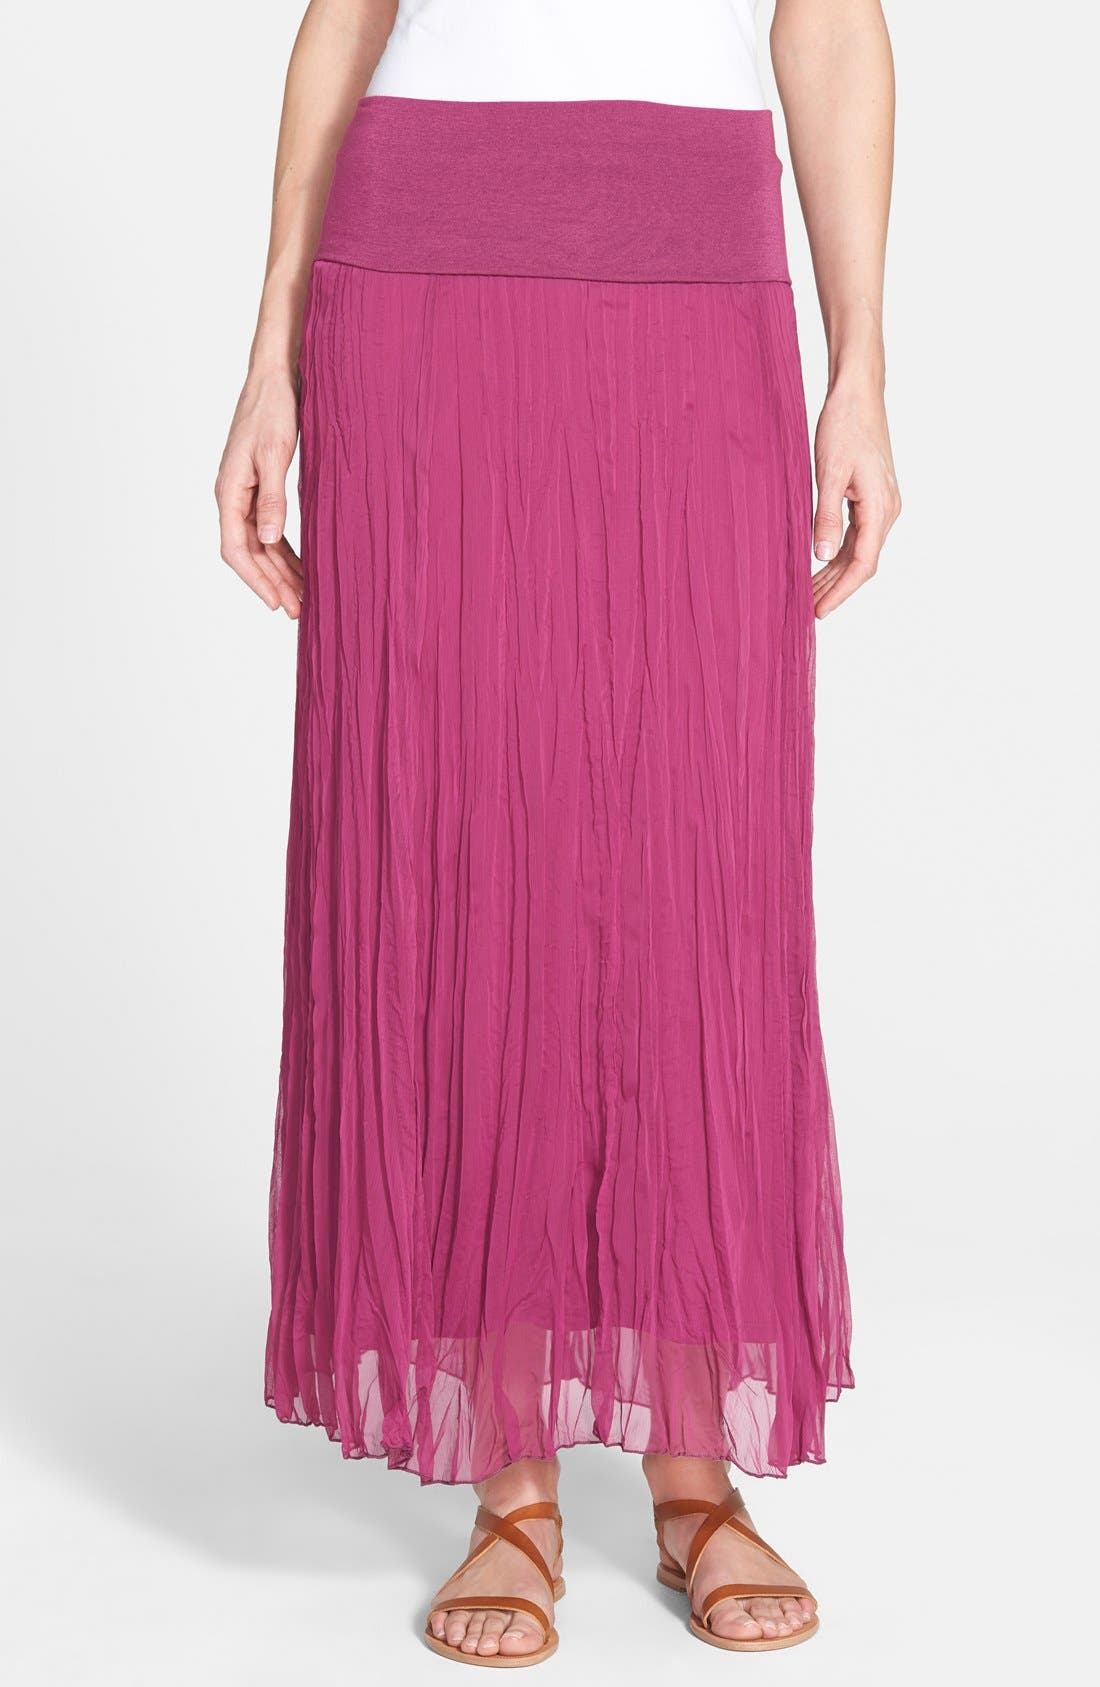 Main Image - Max & Mia Crinkled Maxi Skirt (Regular & Petite)